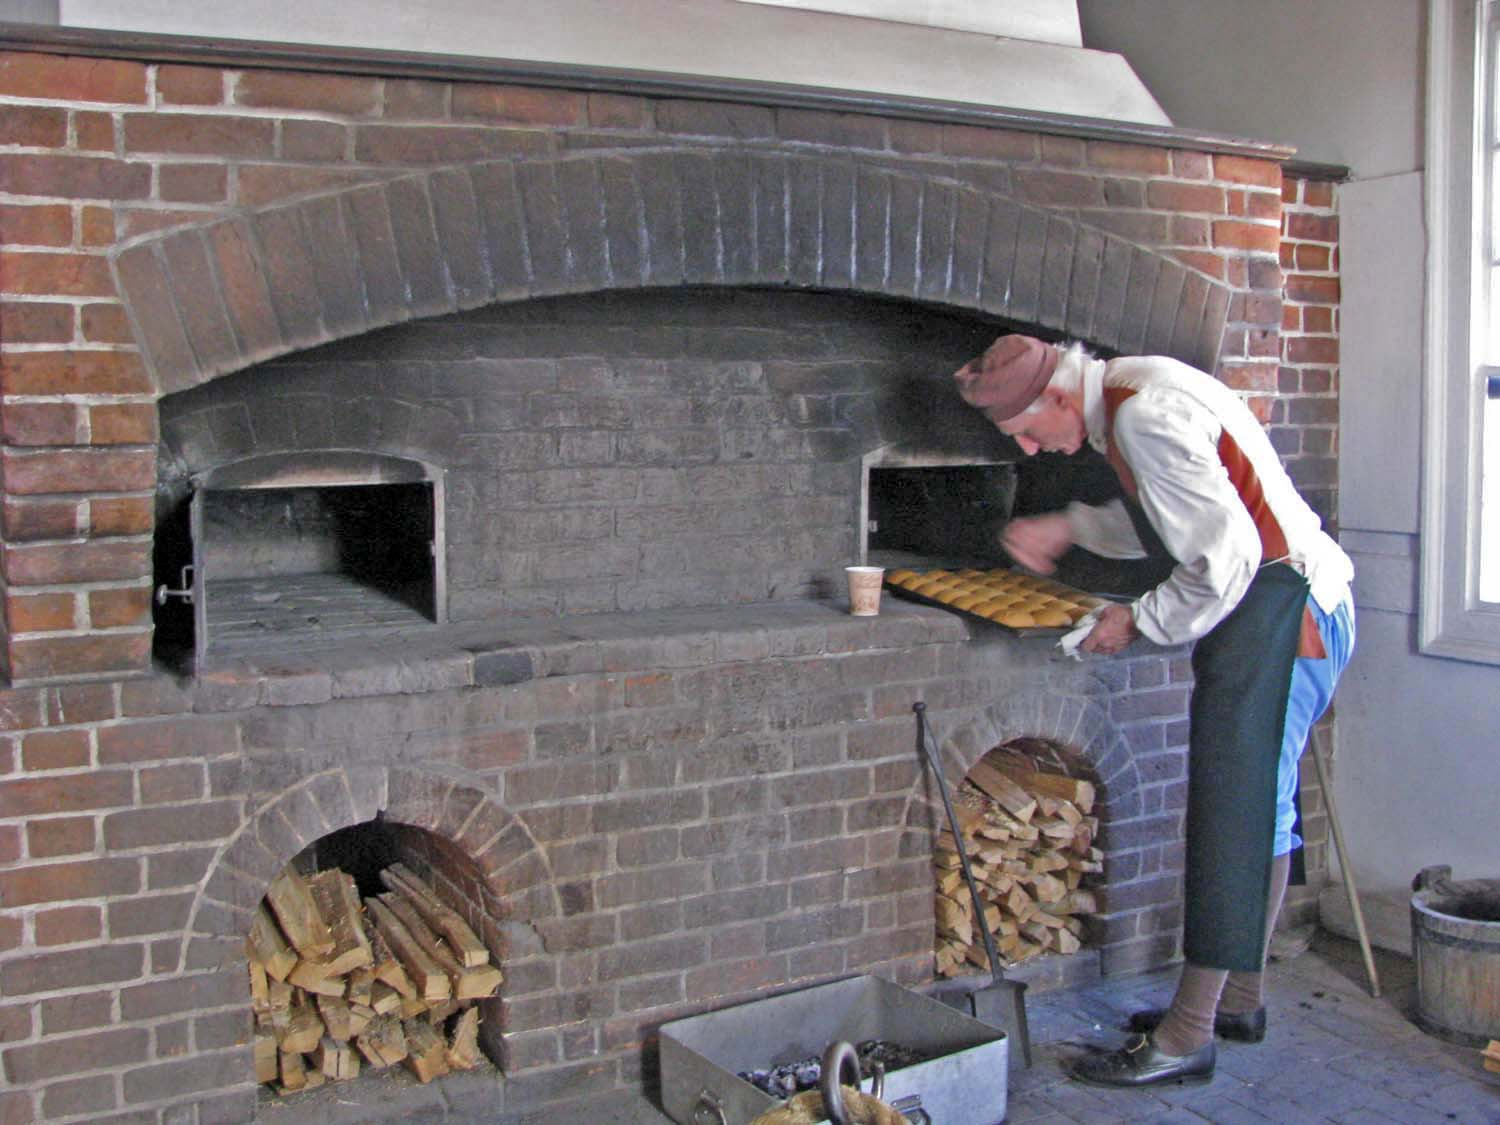 This Baker has been making cookies here in this wood fired oven for a long time